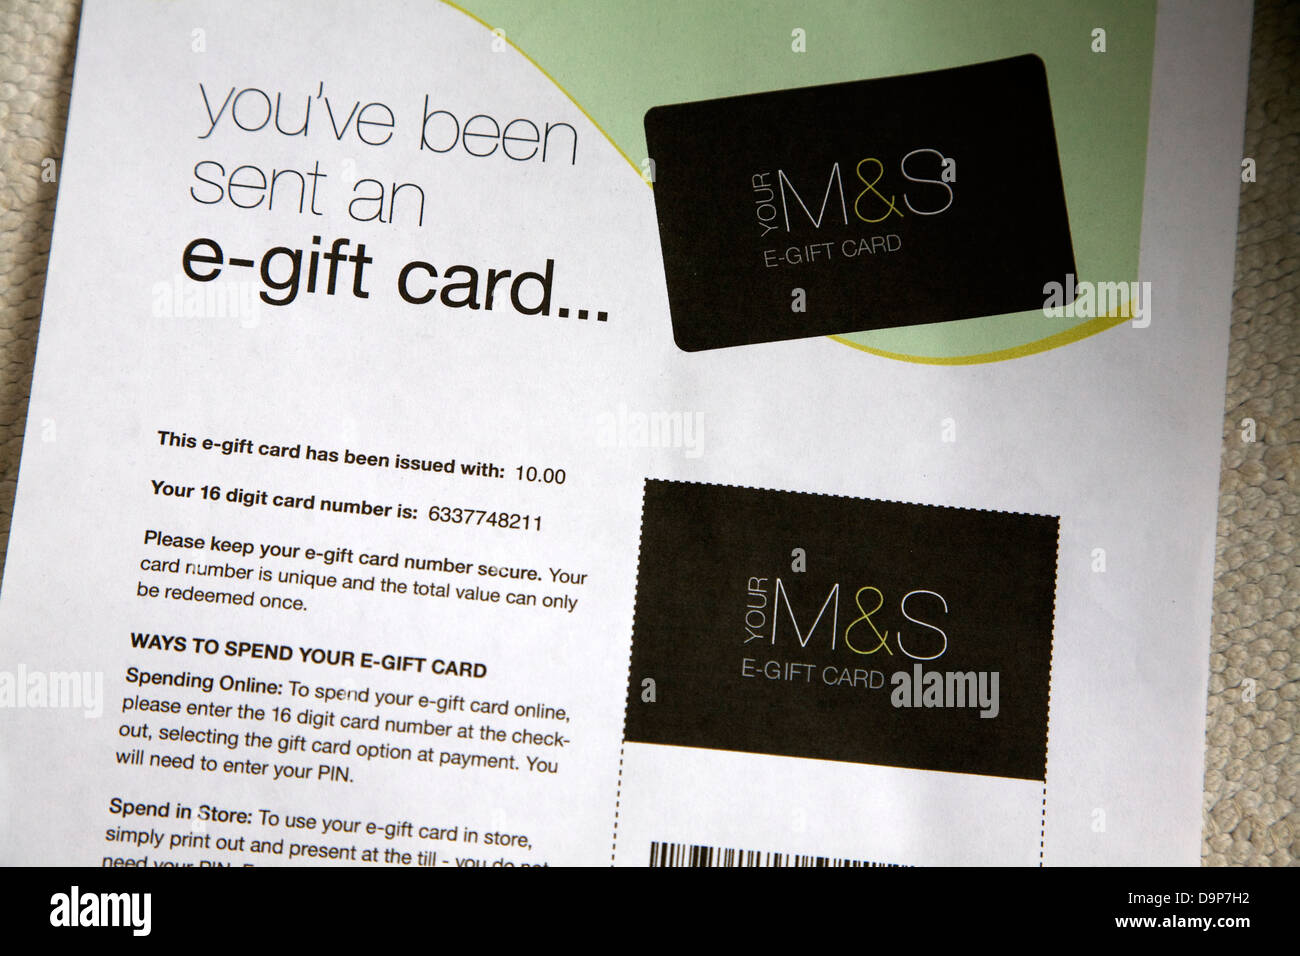 e-gift card for Marks and Spencer